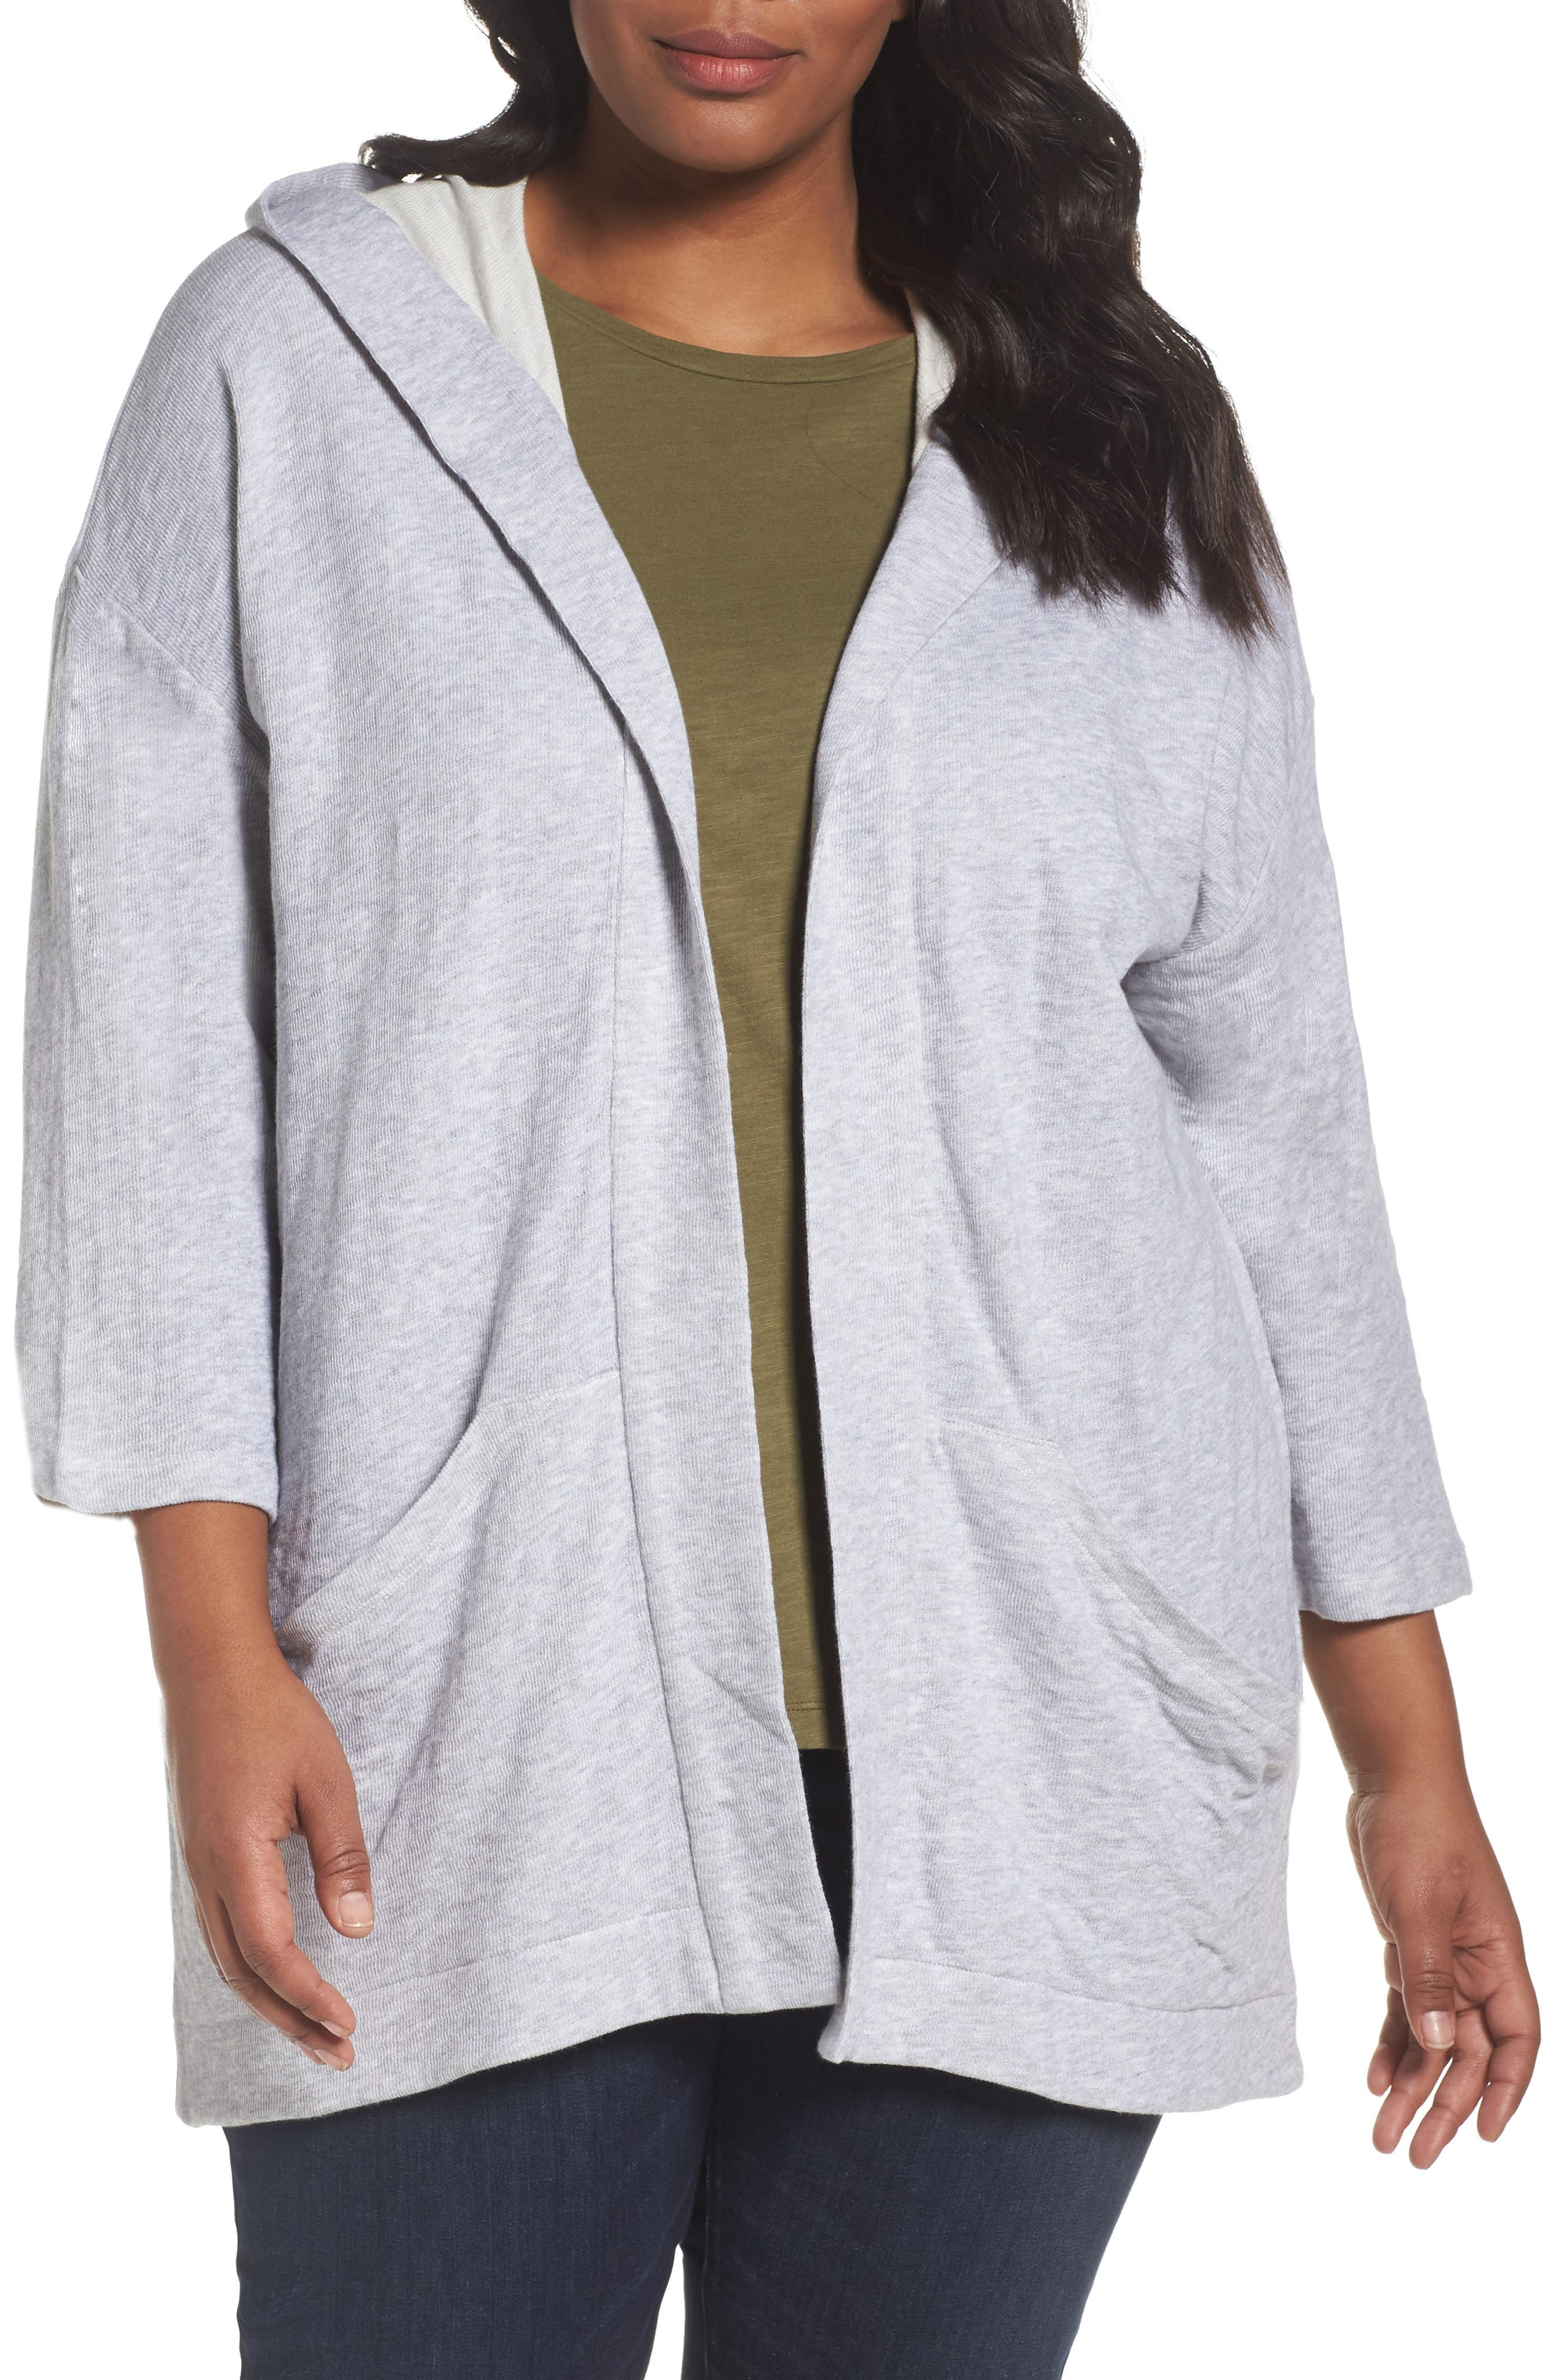 Alternate Image 1 Selected - Eileen Fisher Organic Cotton Knit Hooded Jacket (Plus Size)